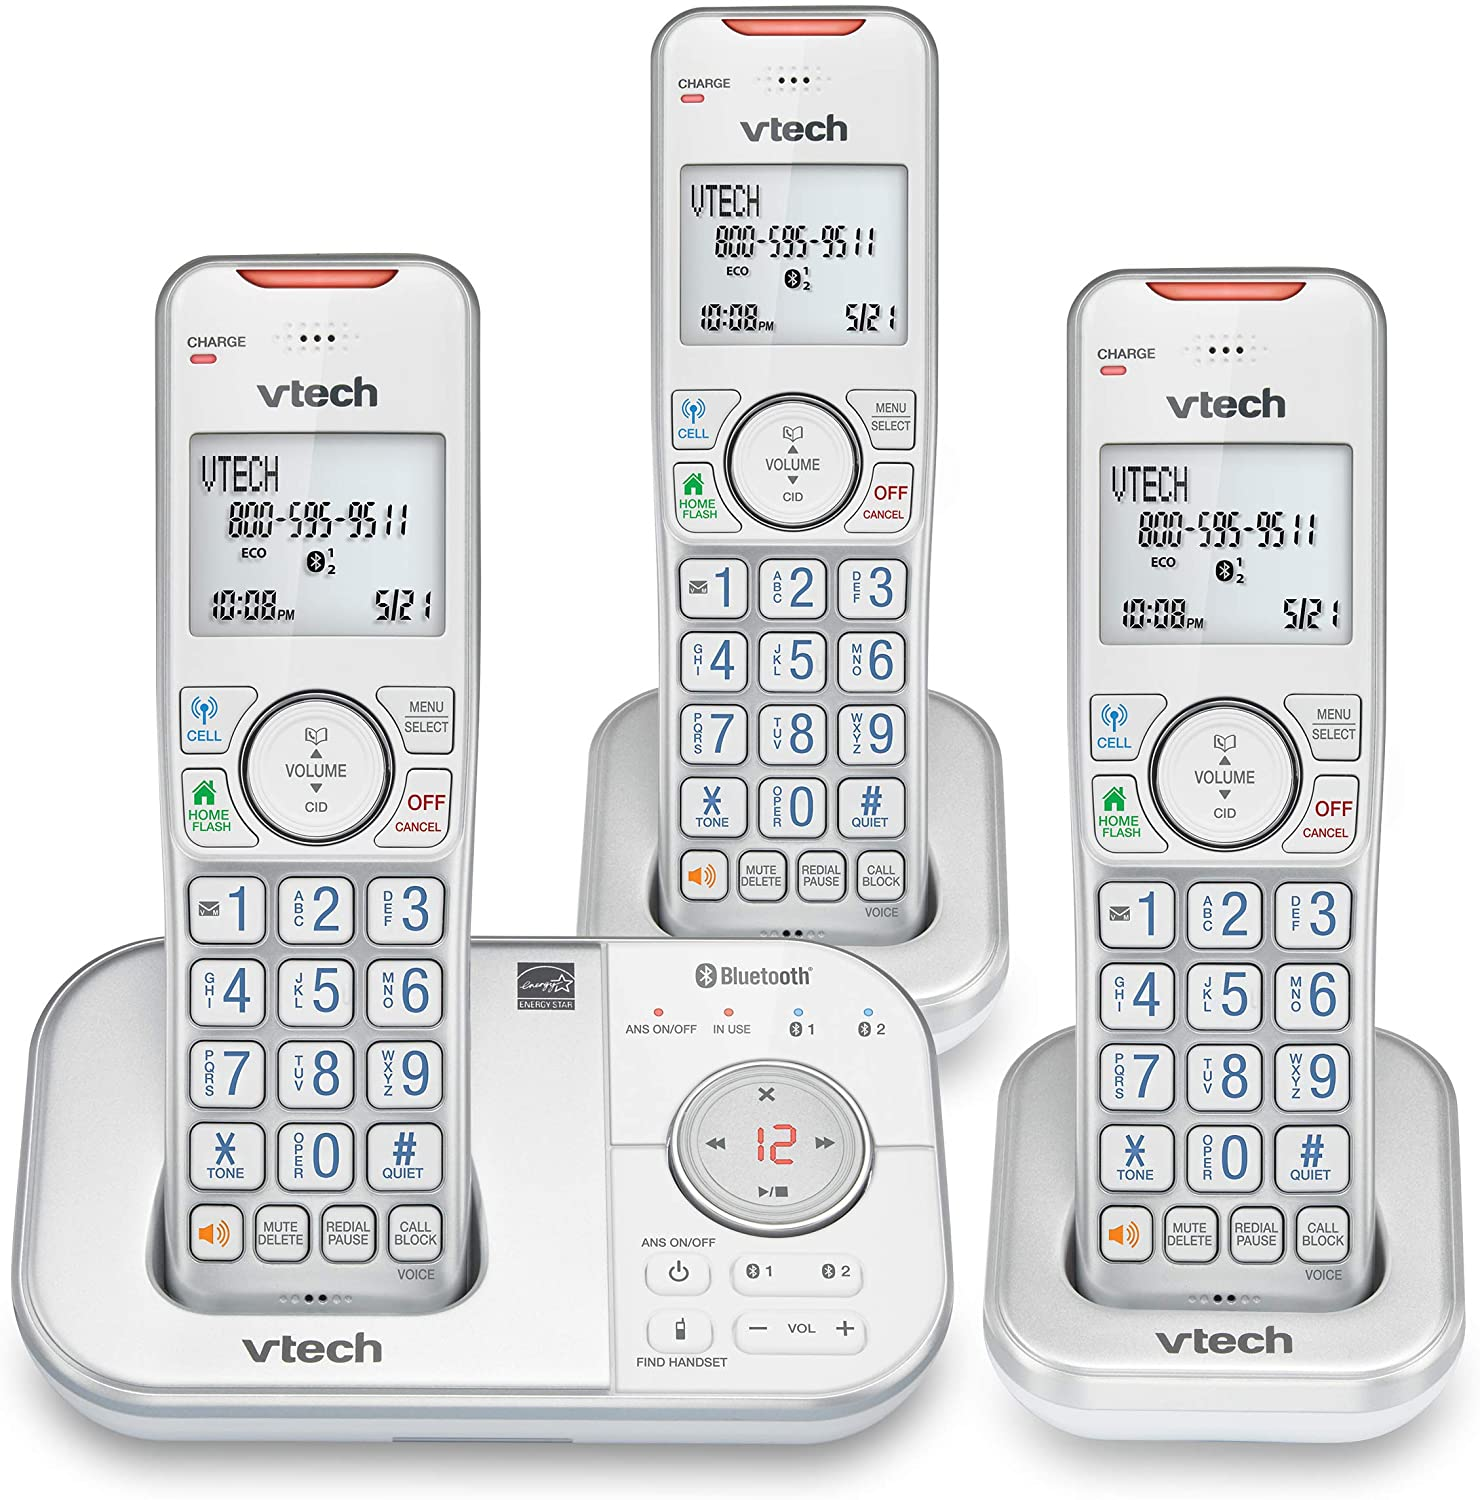 VTech VS112-37 DECT 6.0 Bluetooth 3 Handset Cordless Phone for Home with Answering Machine, Call Blocking, Caller ID, Intercom and Connect to Cell (Silver & White)